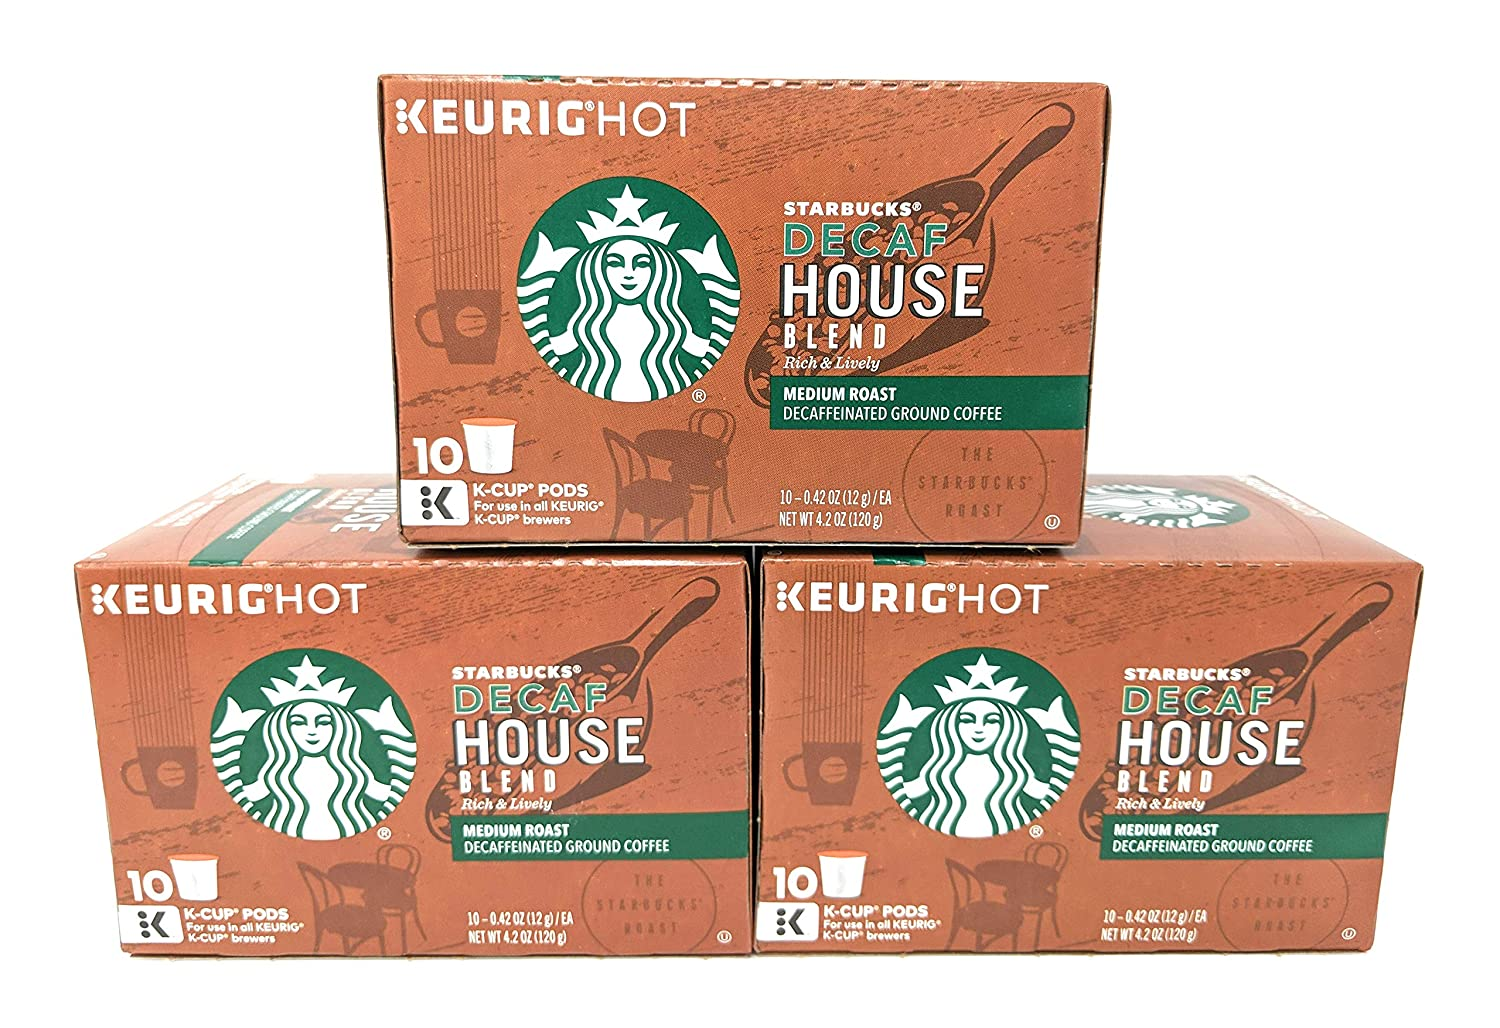 Starbucks Decaf House Blend Medium Single Serve K-Cup Coffee Pods, 4.2 Ounce (Pack of 3)